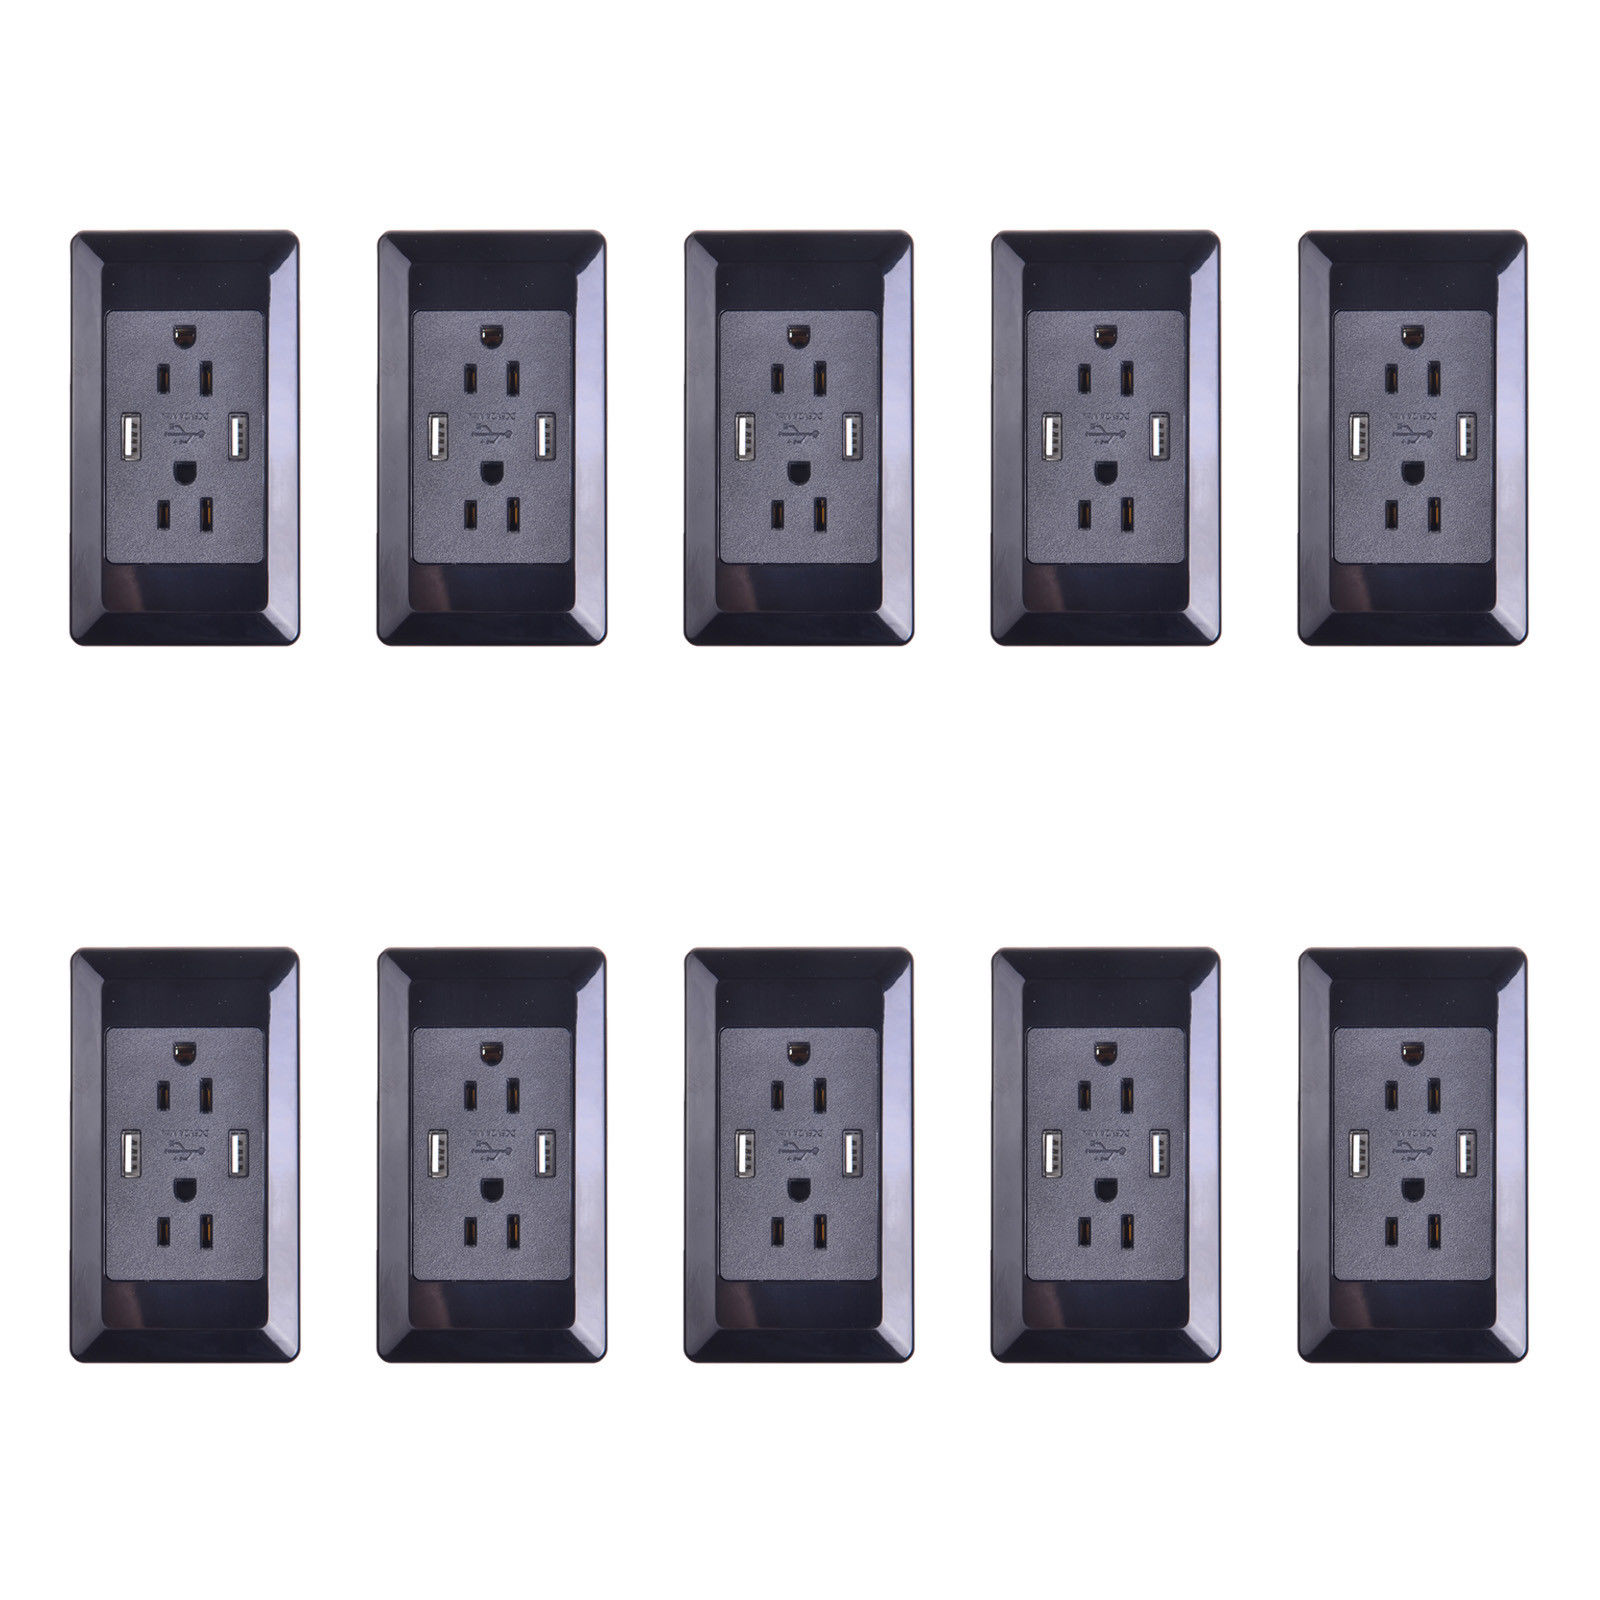 GREENCYCLE 10PK 2A 5V Dual USB Port Electric Wall Charger AC Power Outlet Panel Plate Dock Station Socket Duplex Receptacle Black